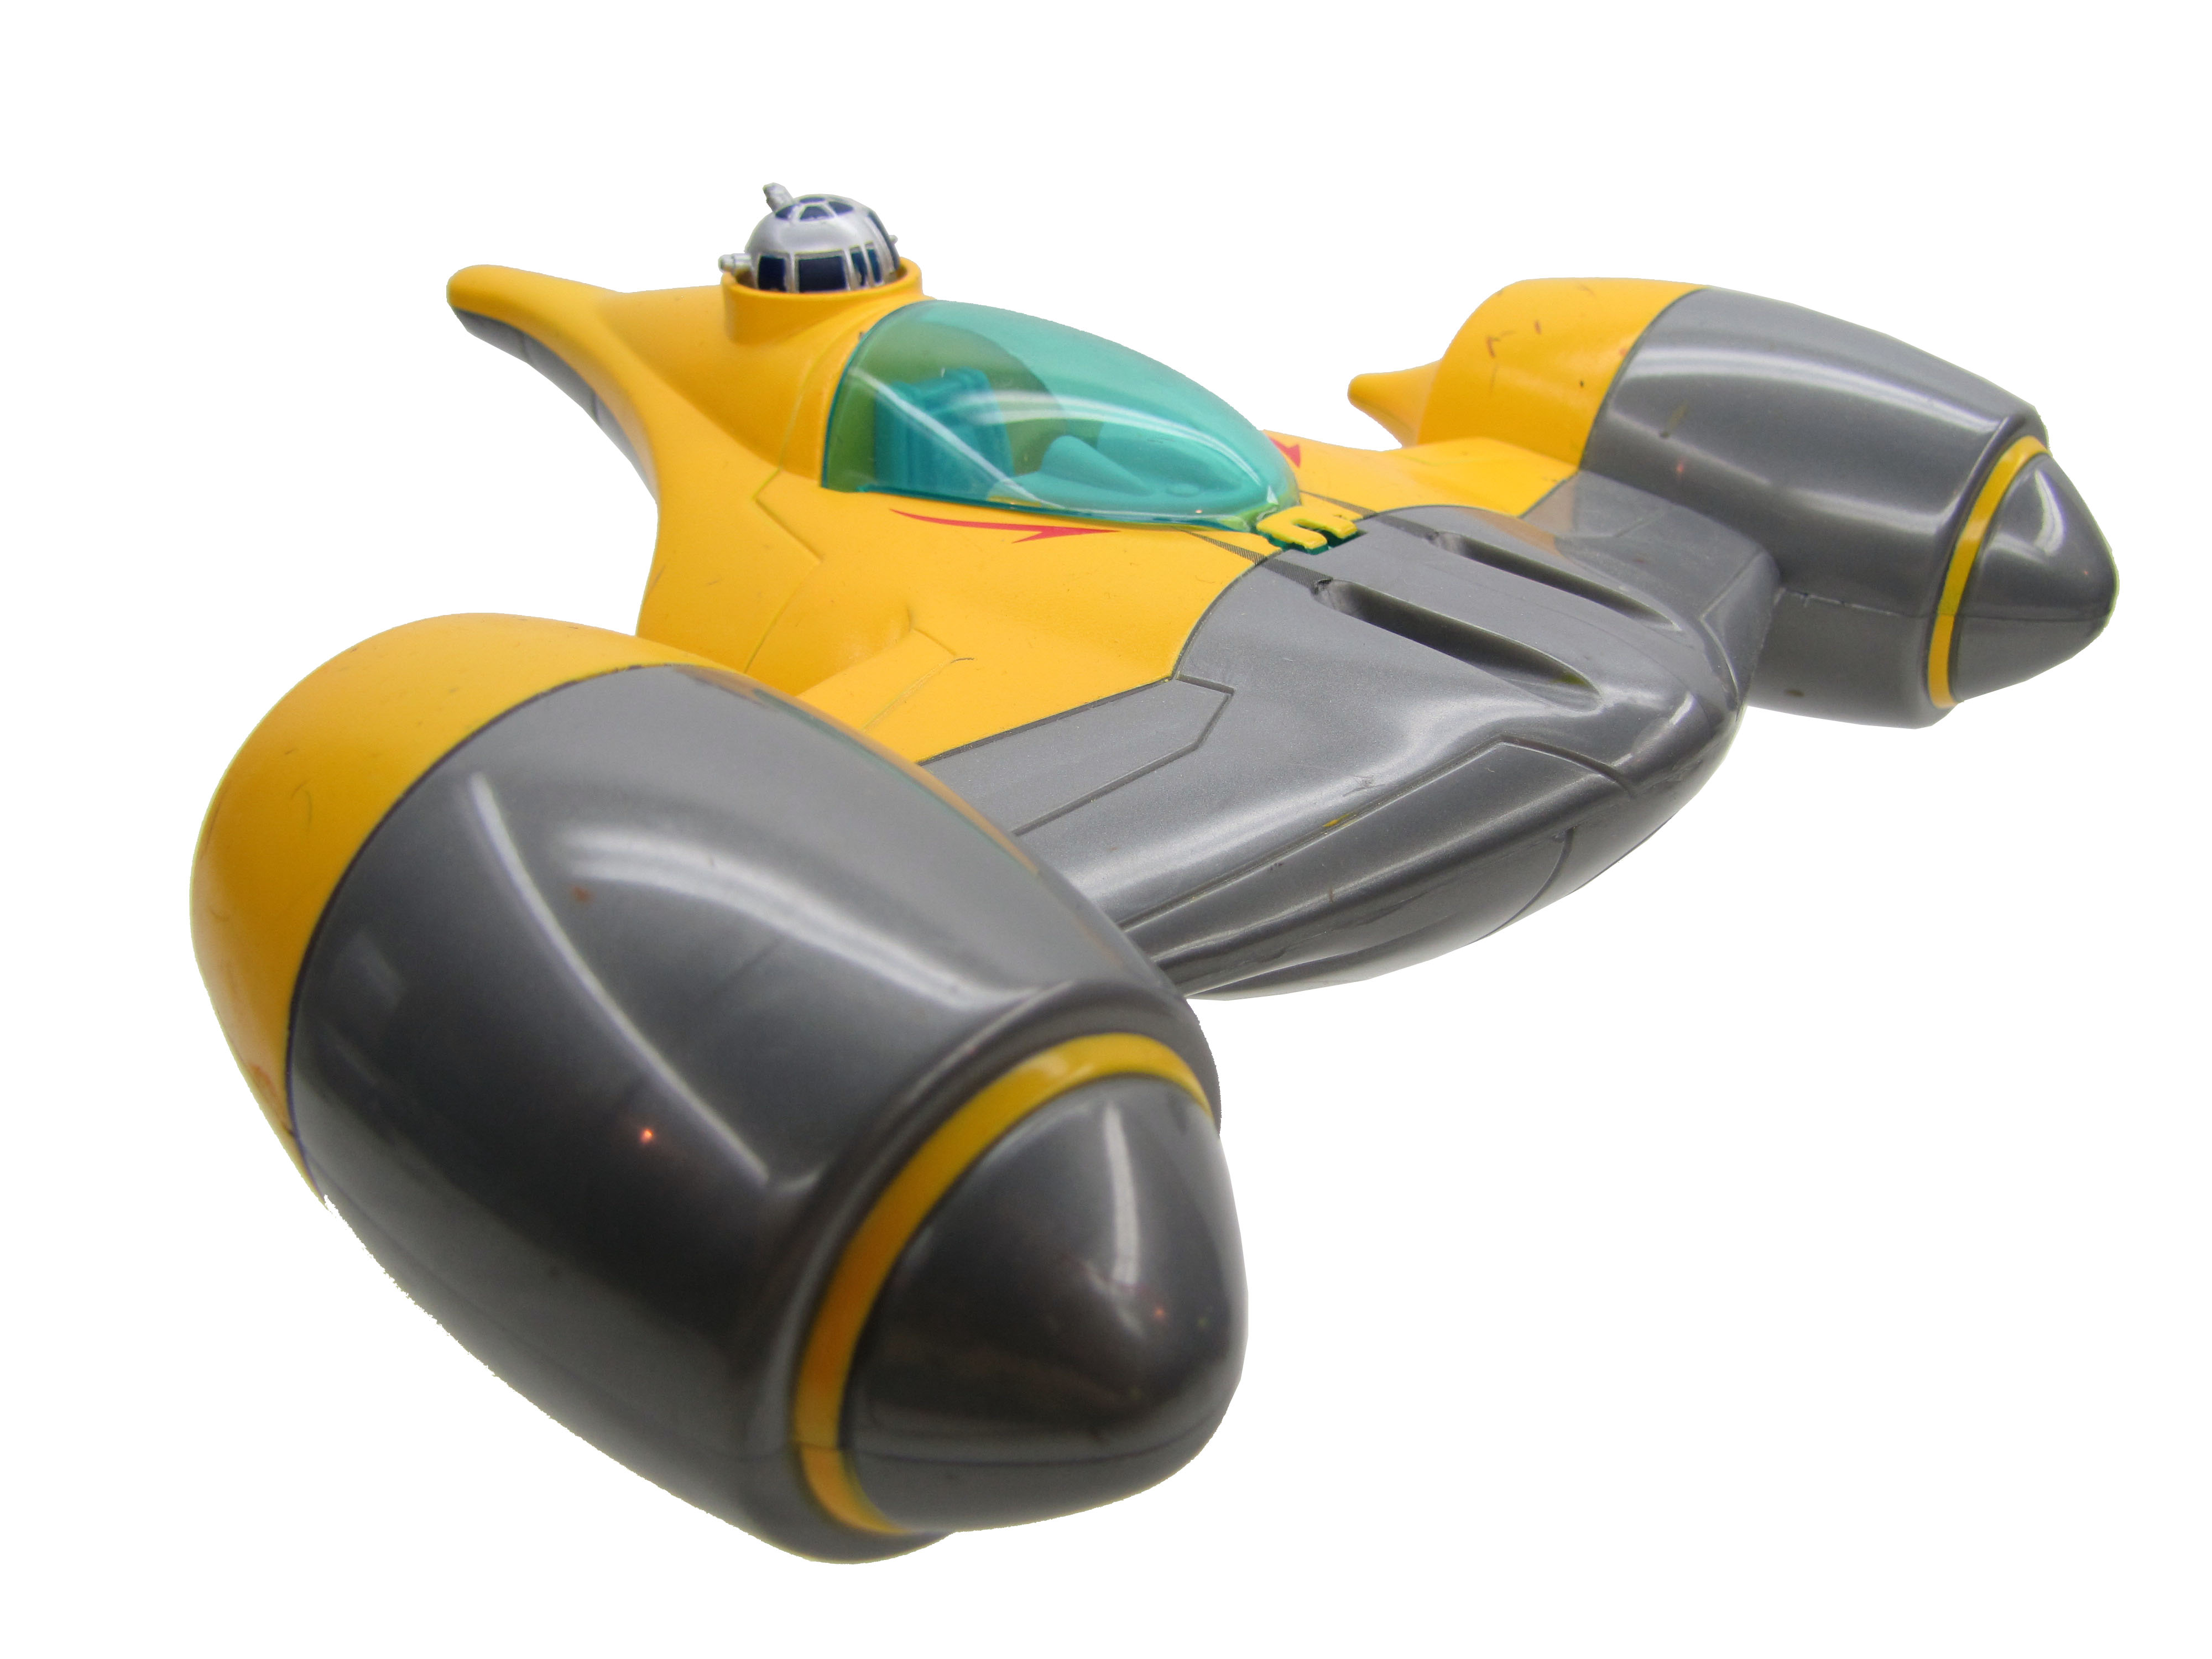 Star Wars Galactic Heroes BATTLE OF NABOO - NABOO STARFIGHTER